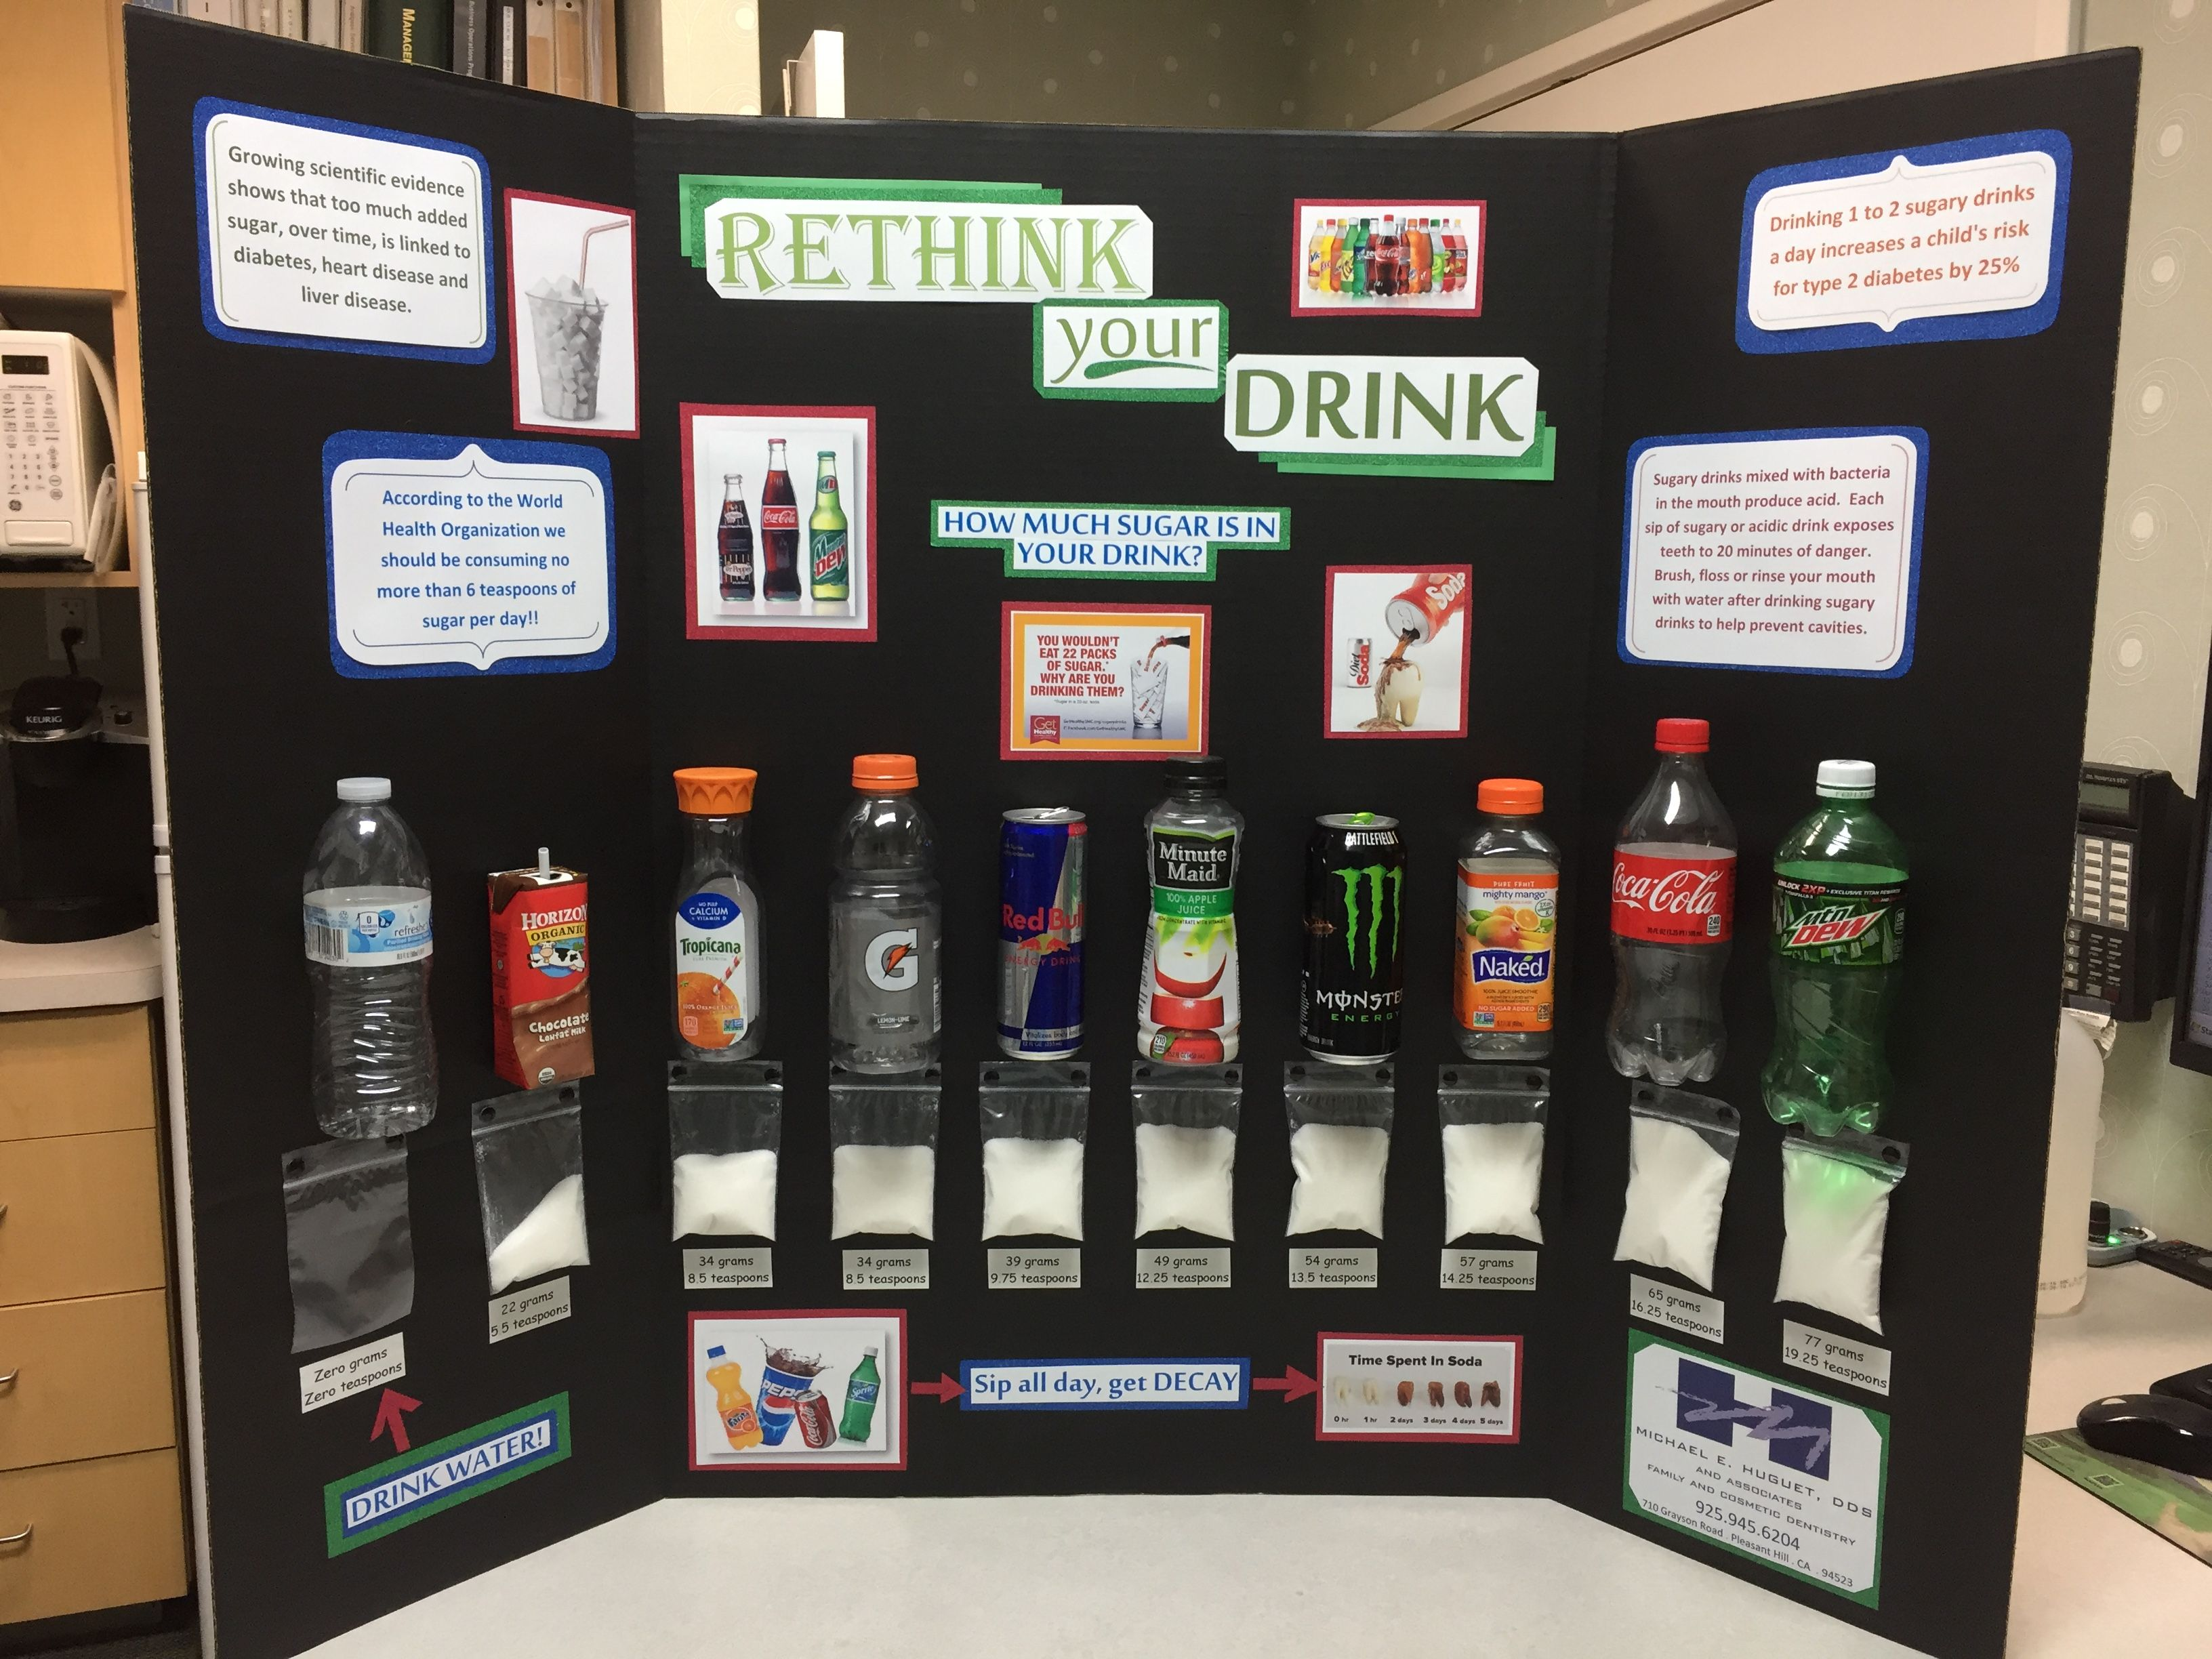 Rethink Your Drink Sugary Drinks Are Bad For Your Teeth